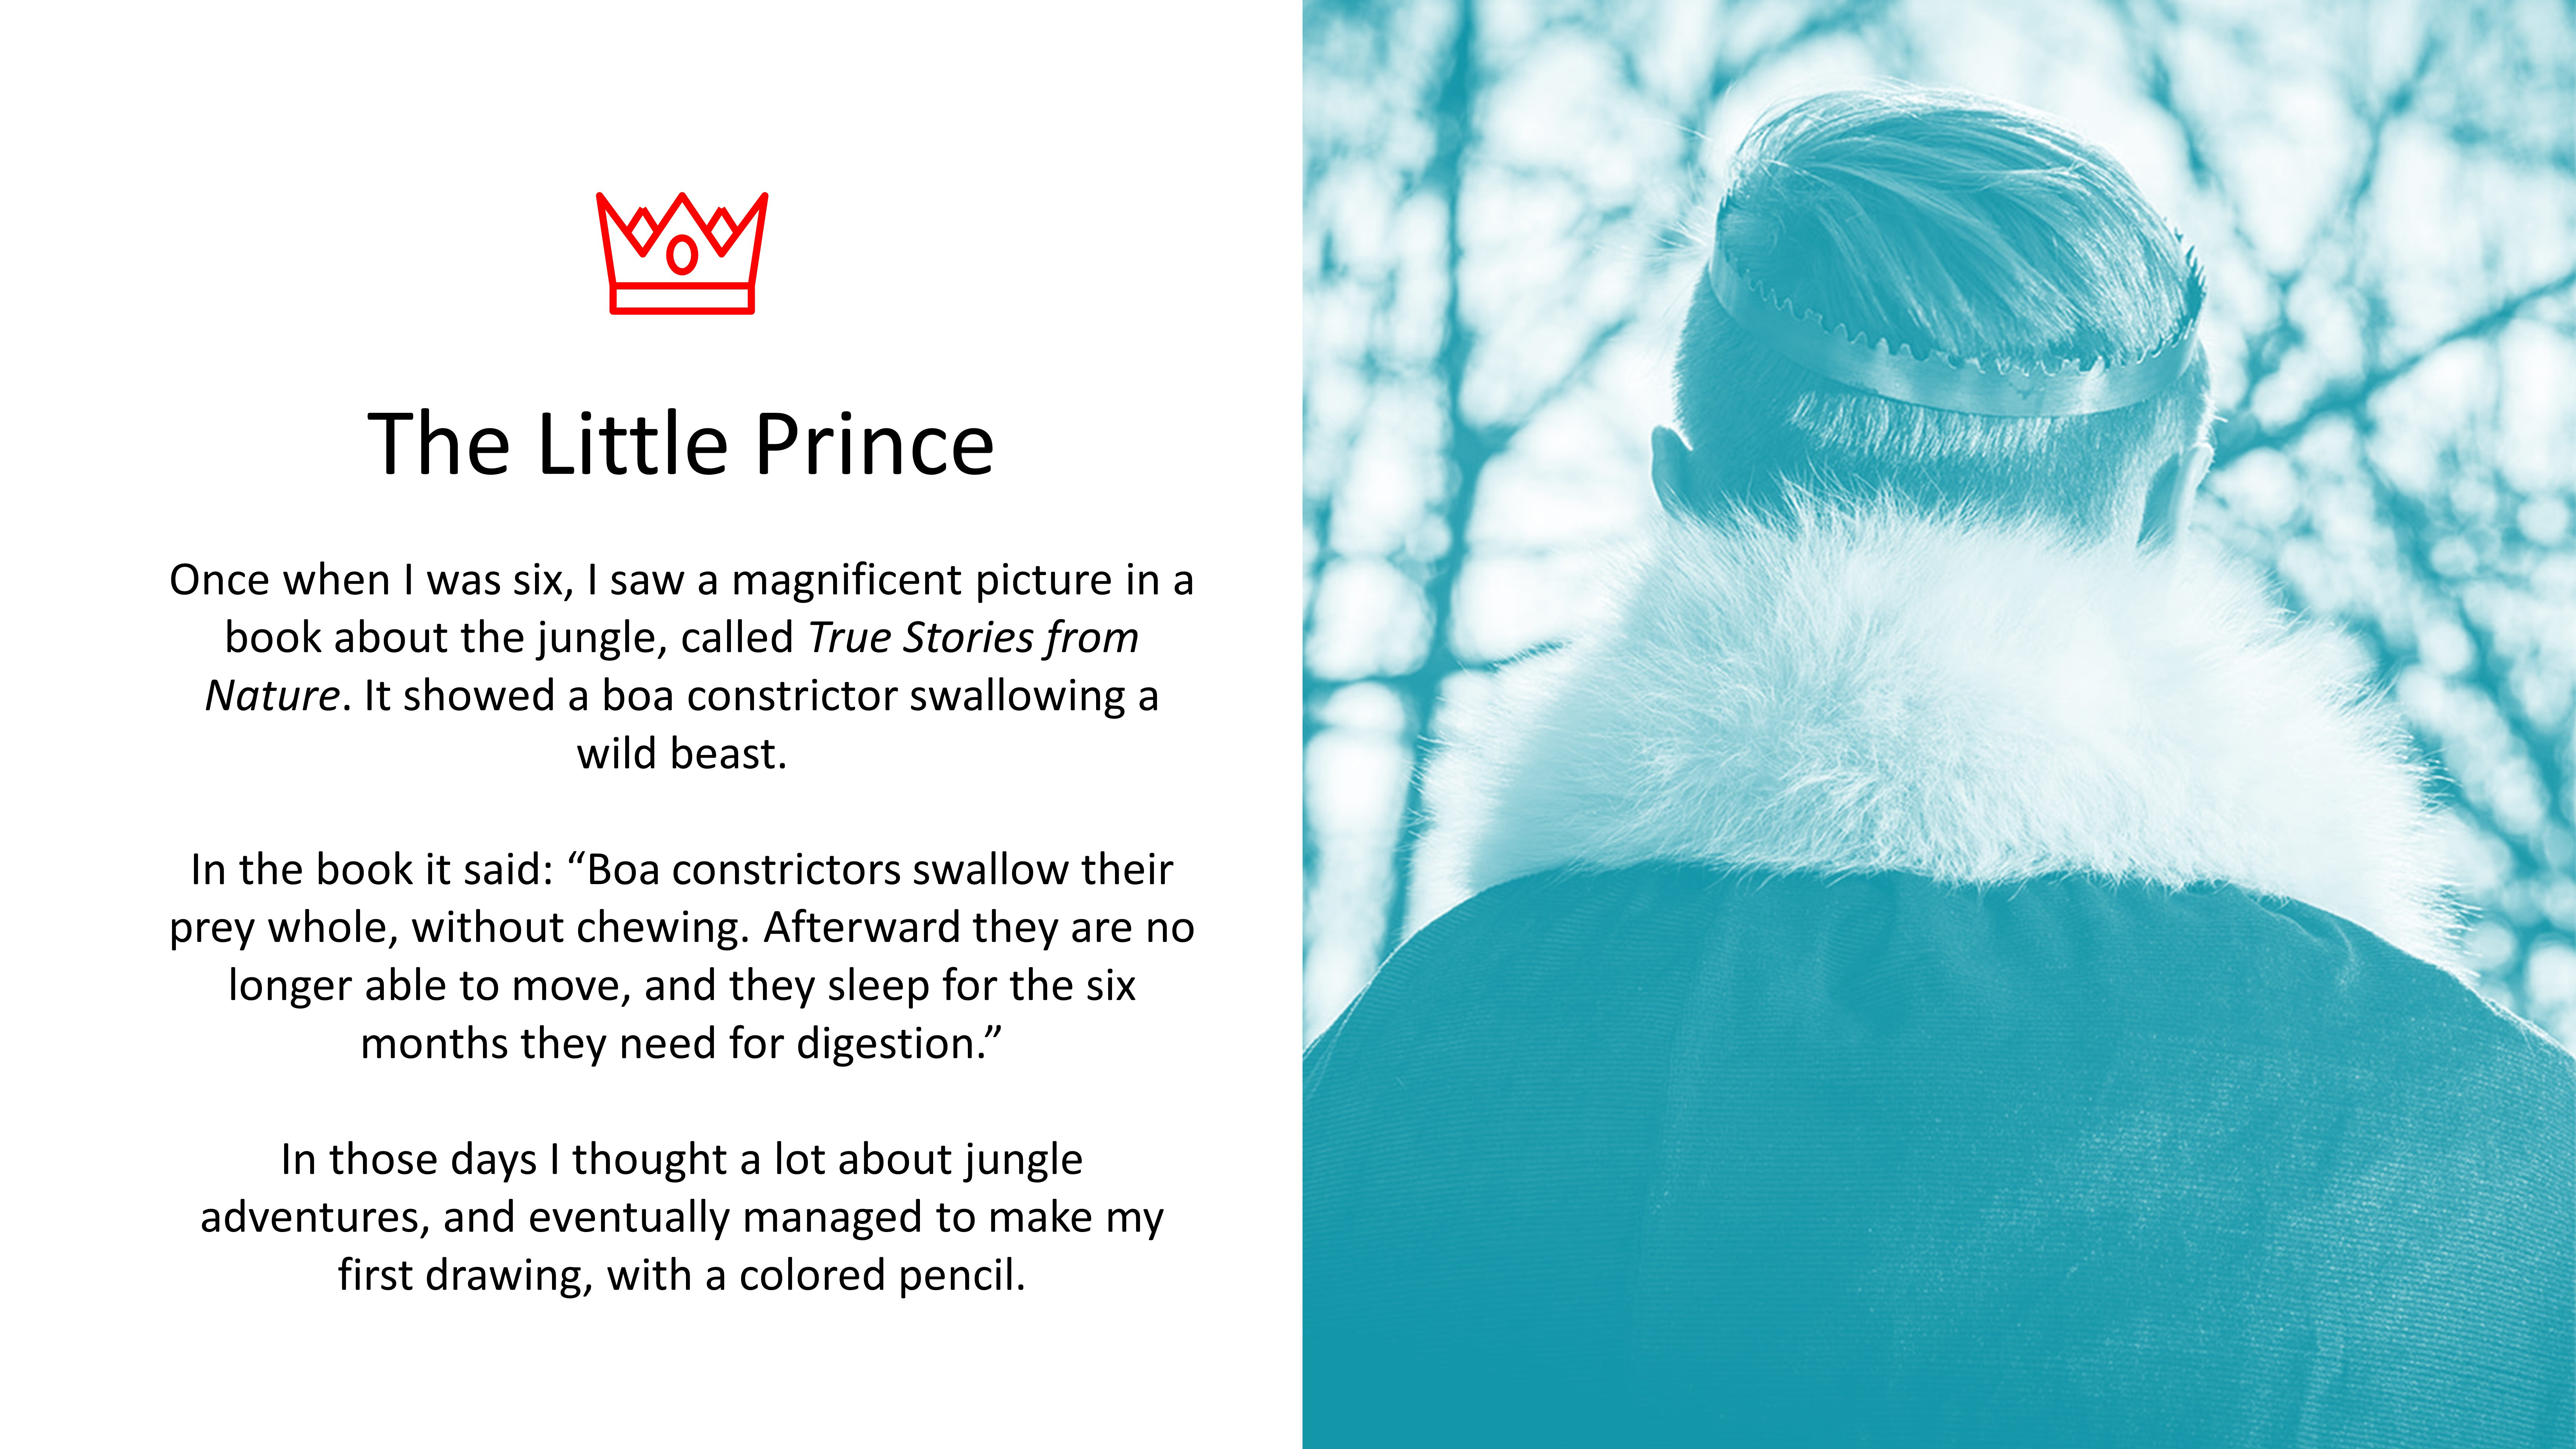 Image of prince with text from The Little Prince, centre aligned